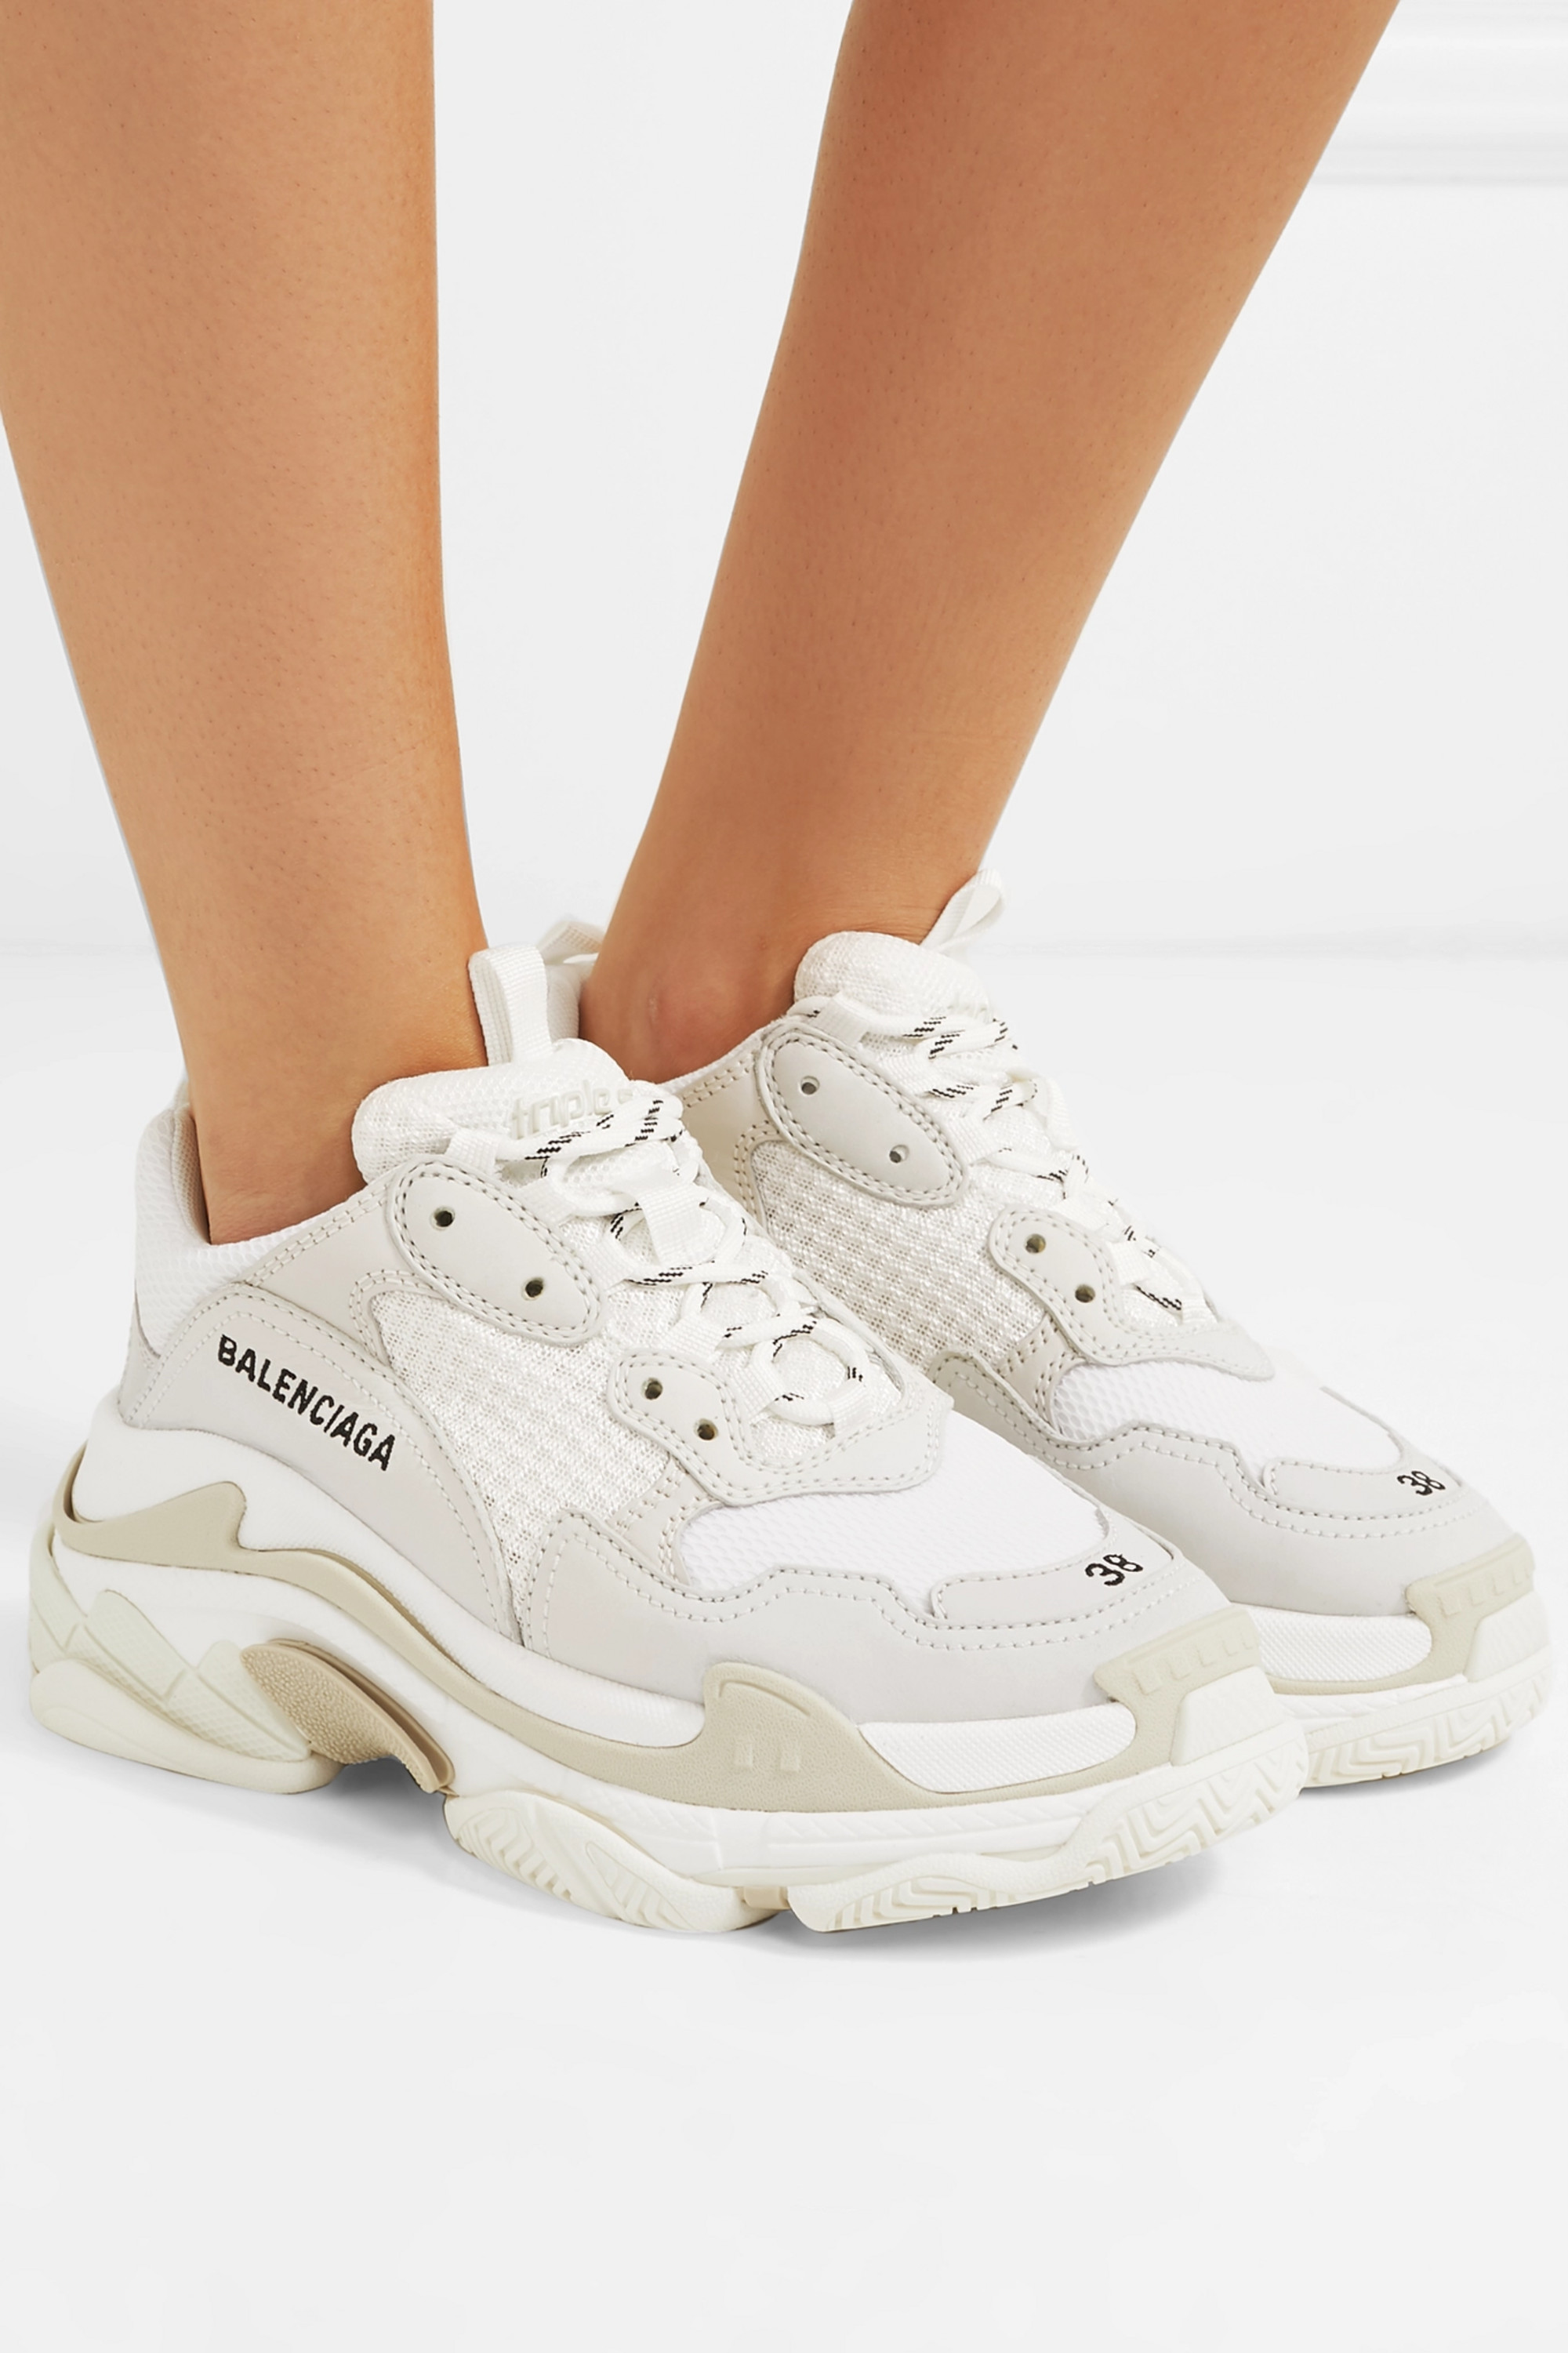 White Triple S suede, leather and mesh